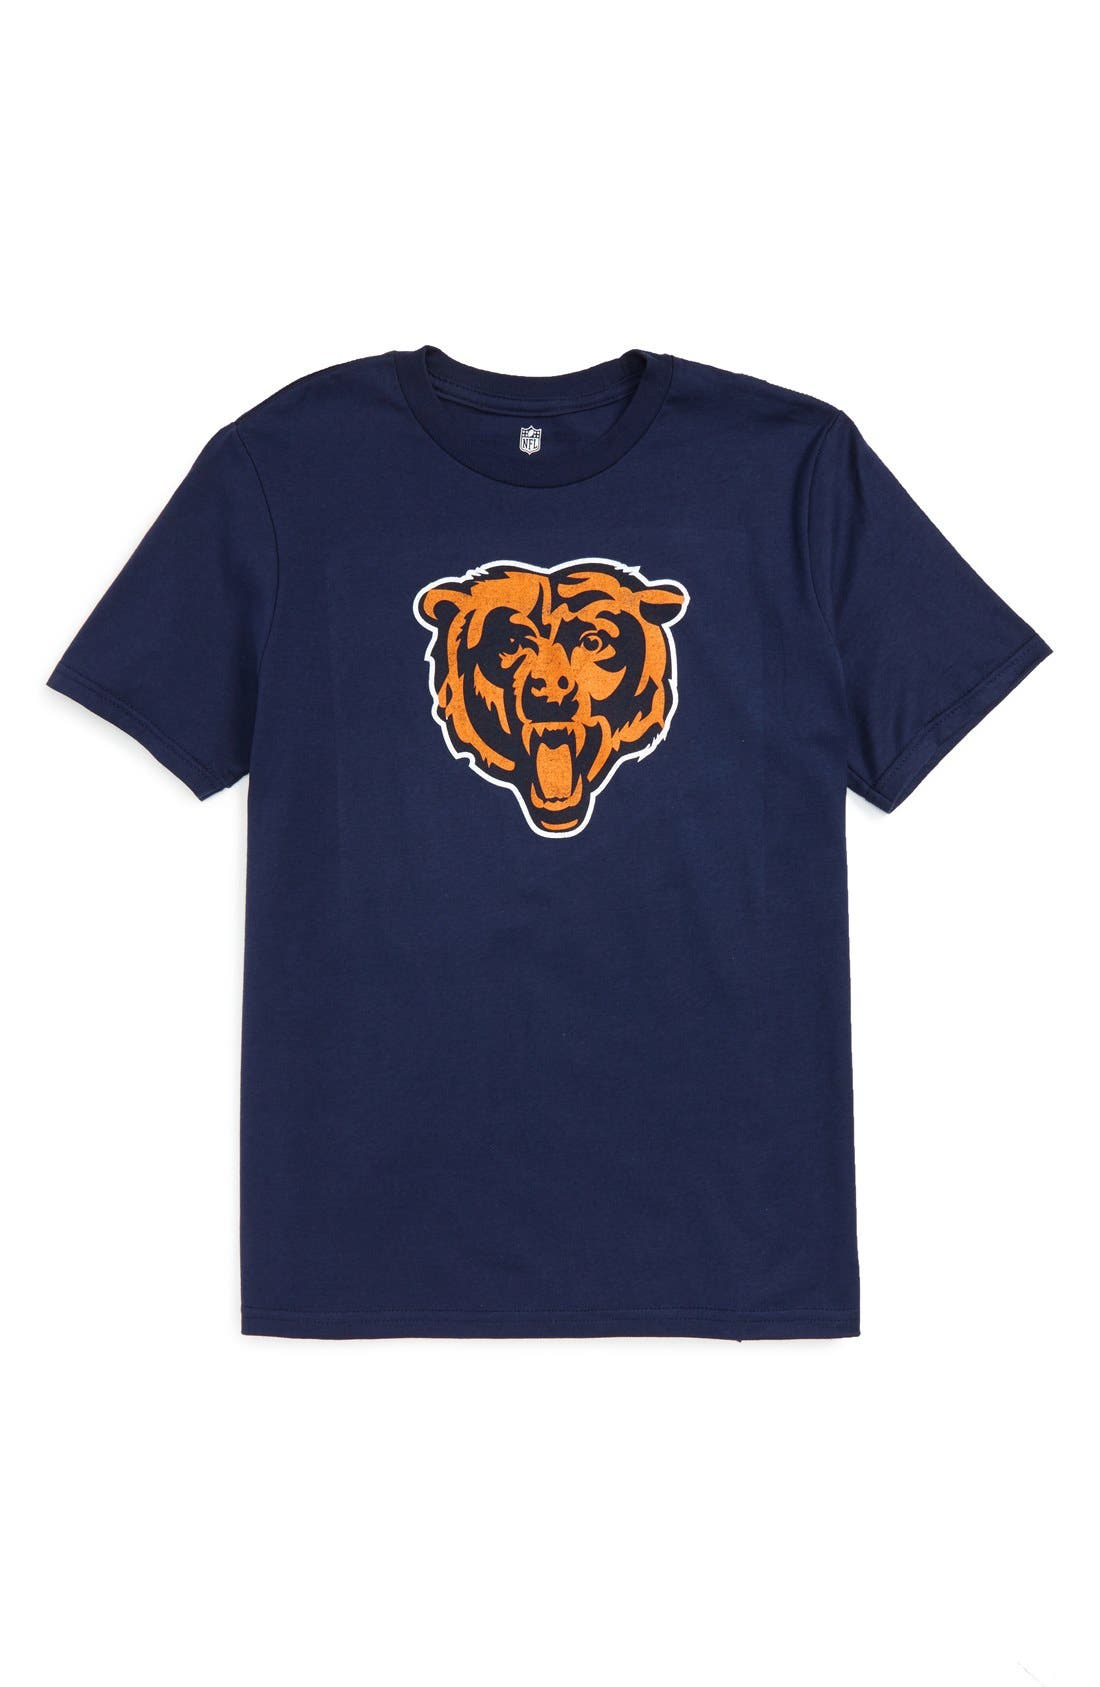 'NFL - Chicago Bears' Distressed Logo Graphic T-Shirt,                         Main,                         color, Bears